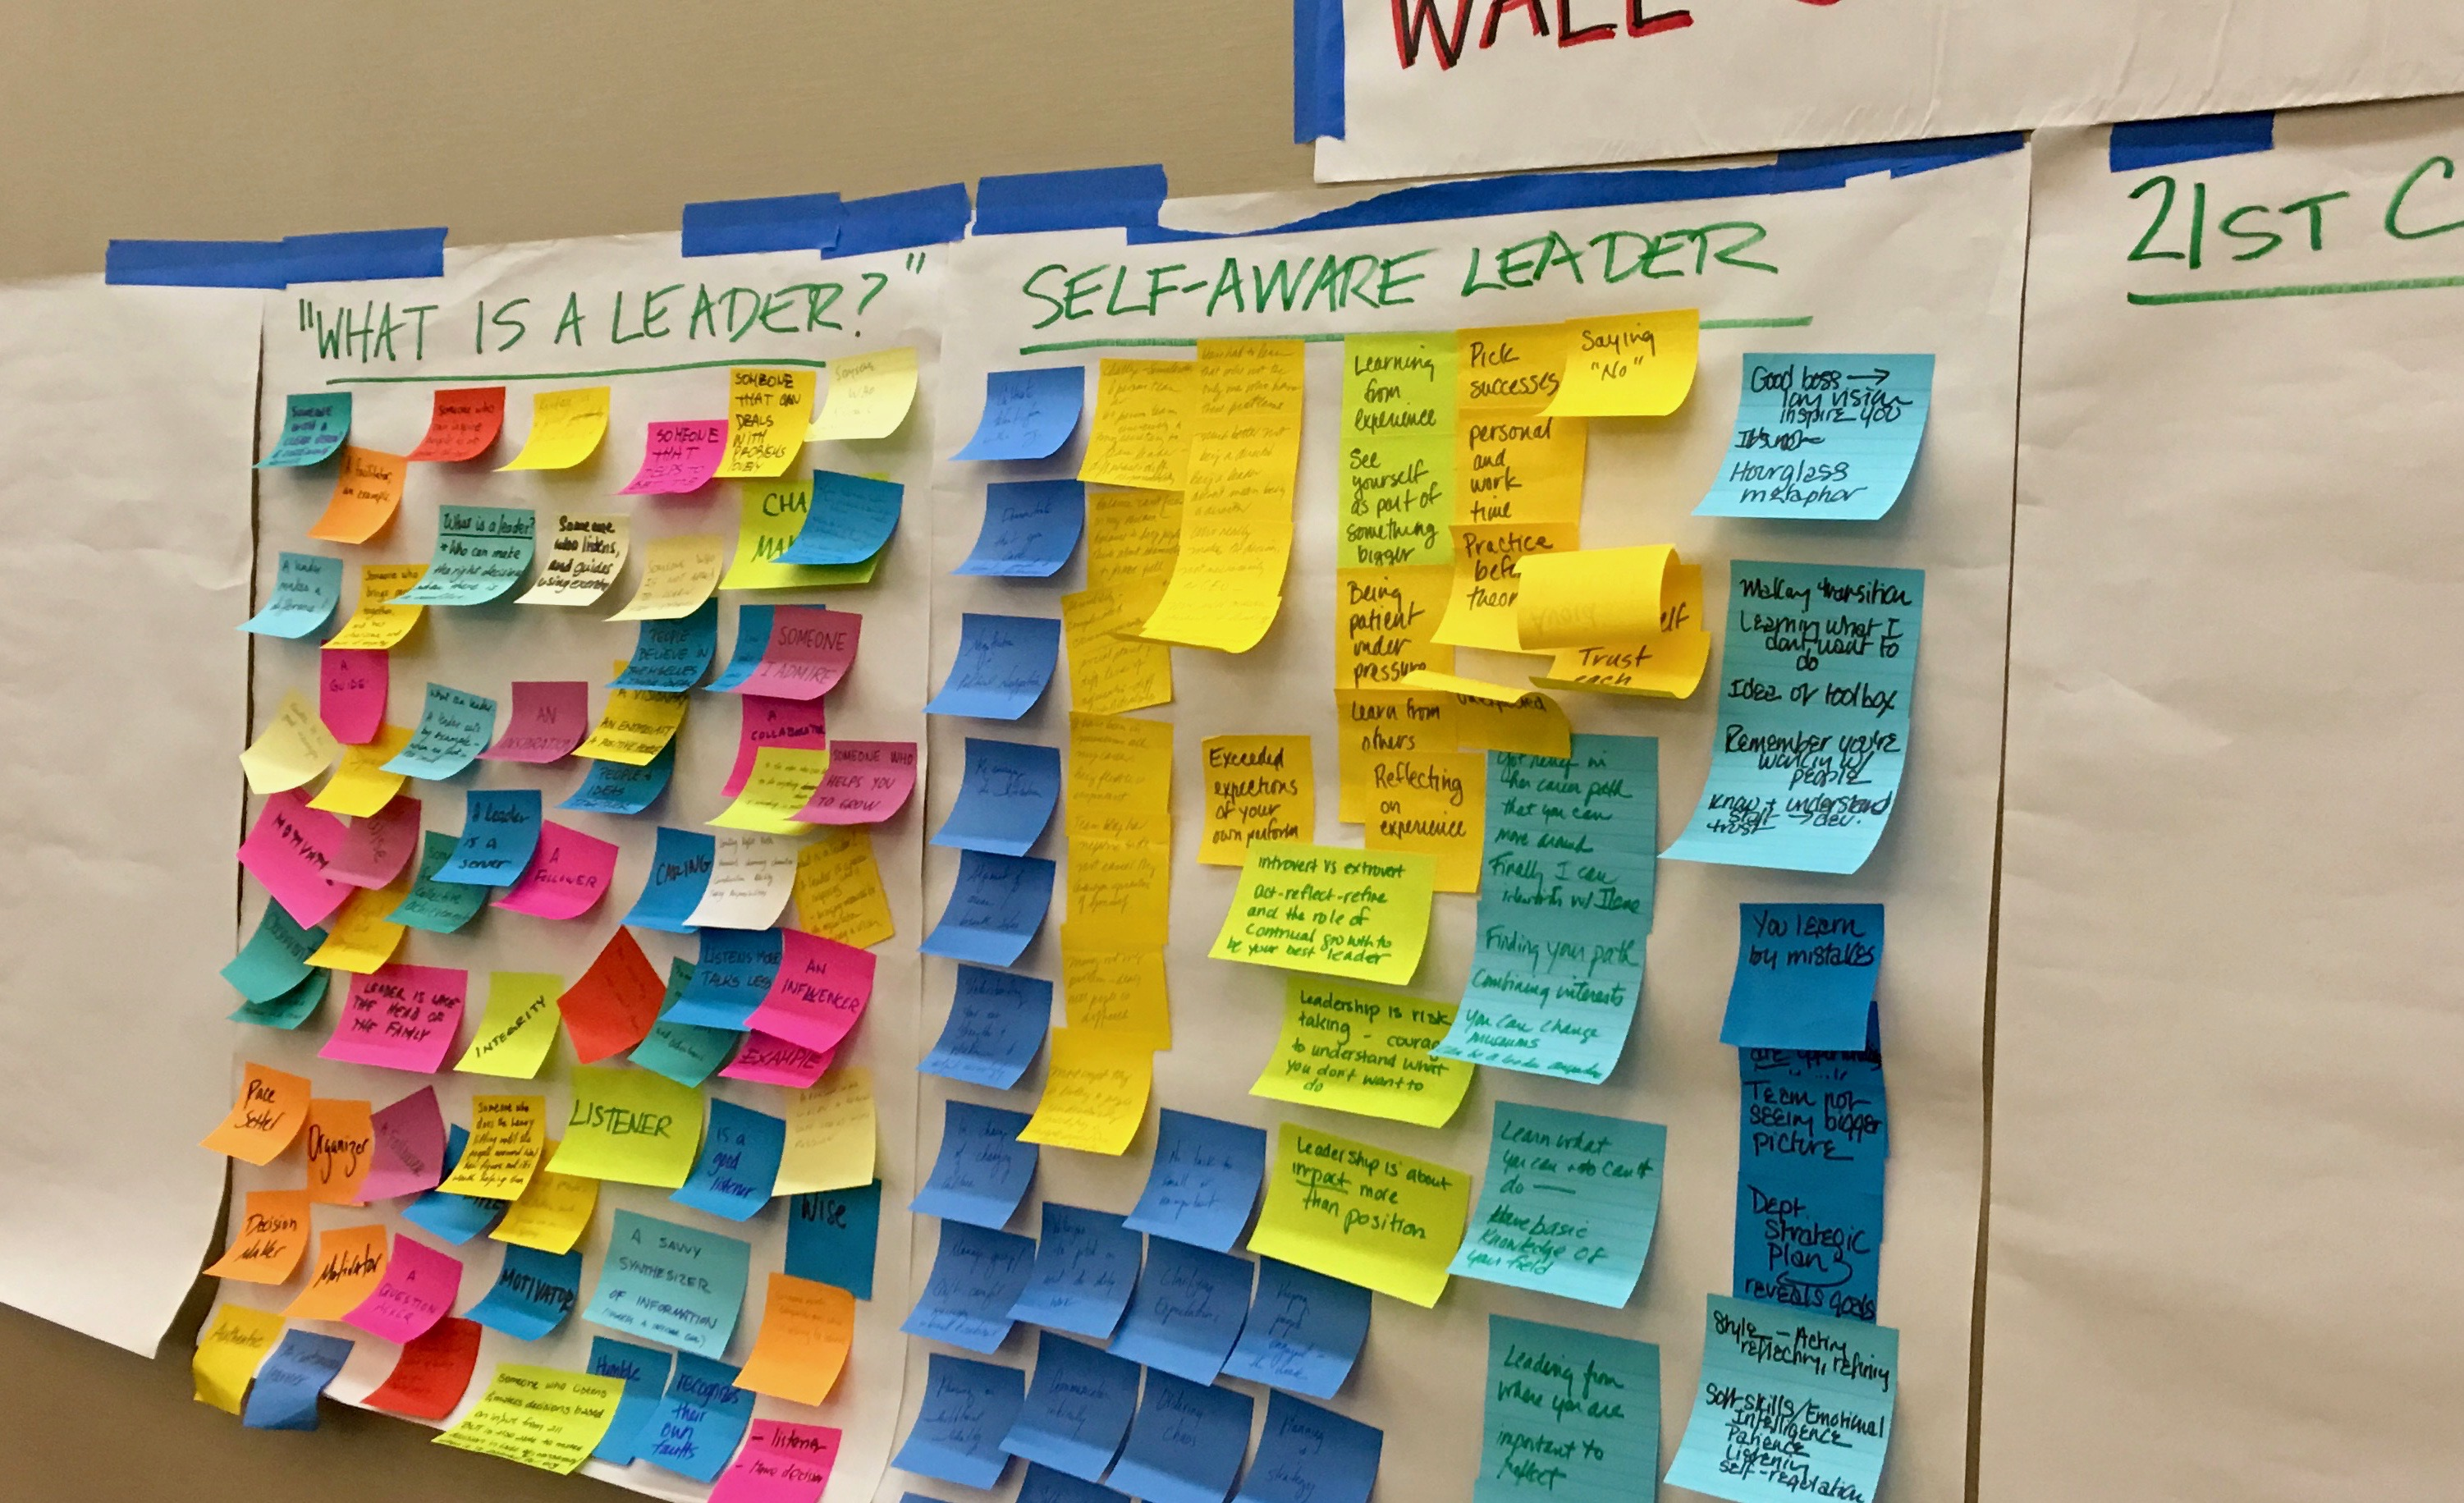 This image shows a large piece of paper with colorful post-it notes attached from a leadership session at AAM's 2017 Annual Meeting. On each note, people have written down different qualities of leadership.